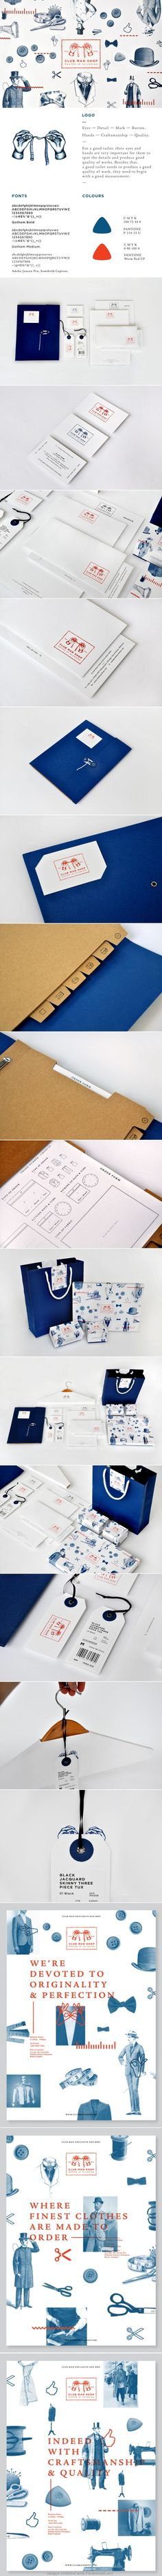 Club Man Shop on Behance. Red, white and blue #identity #packaging #branding